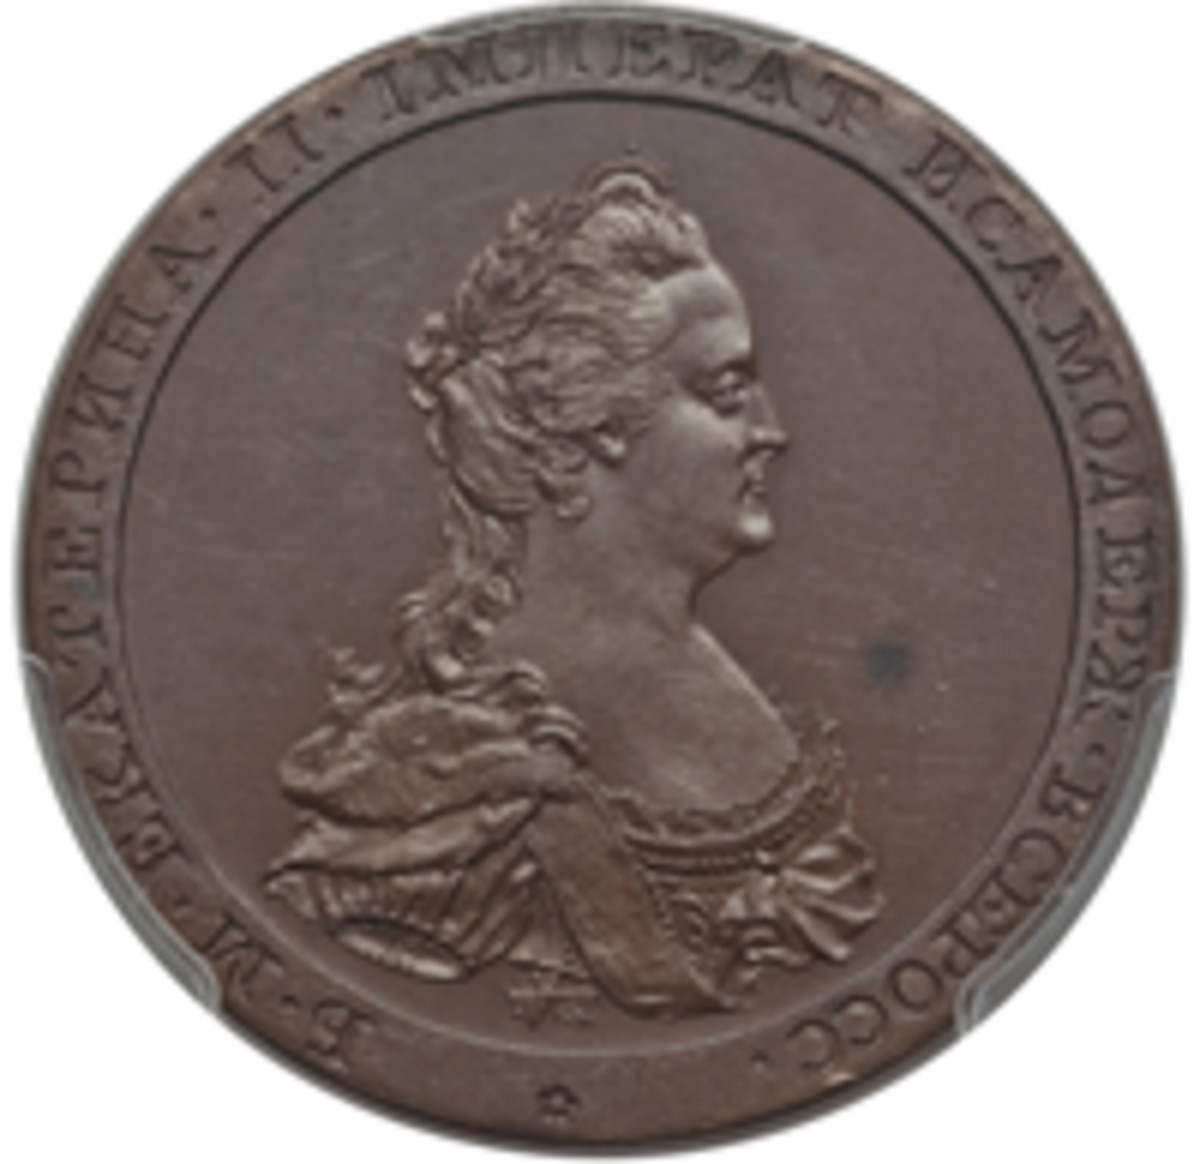 Catherine II death medal of 1796 engraved by Conrad Küchler and struck at the Soho Mint. (Image courtesy www.ha.com)